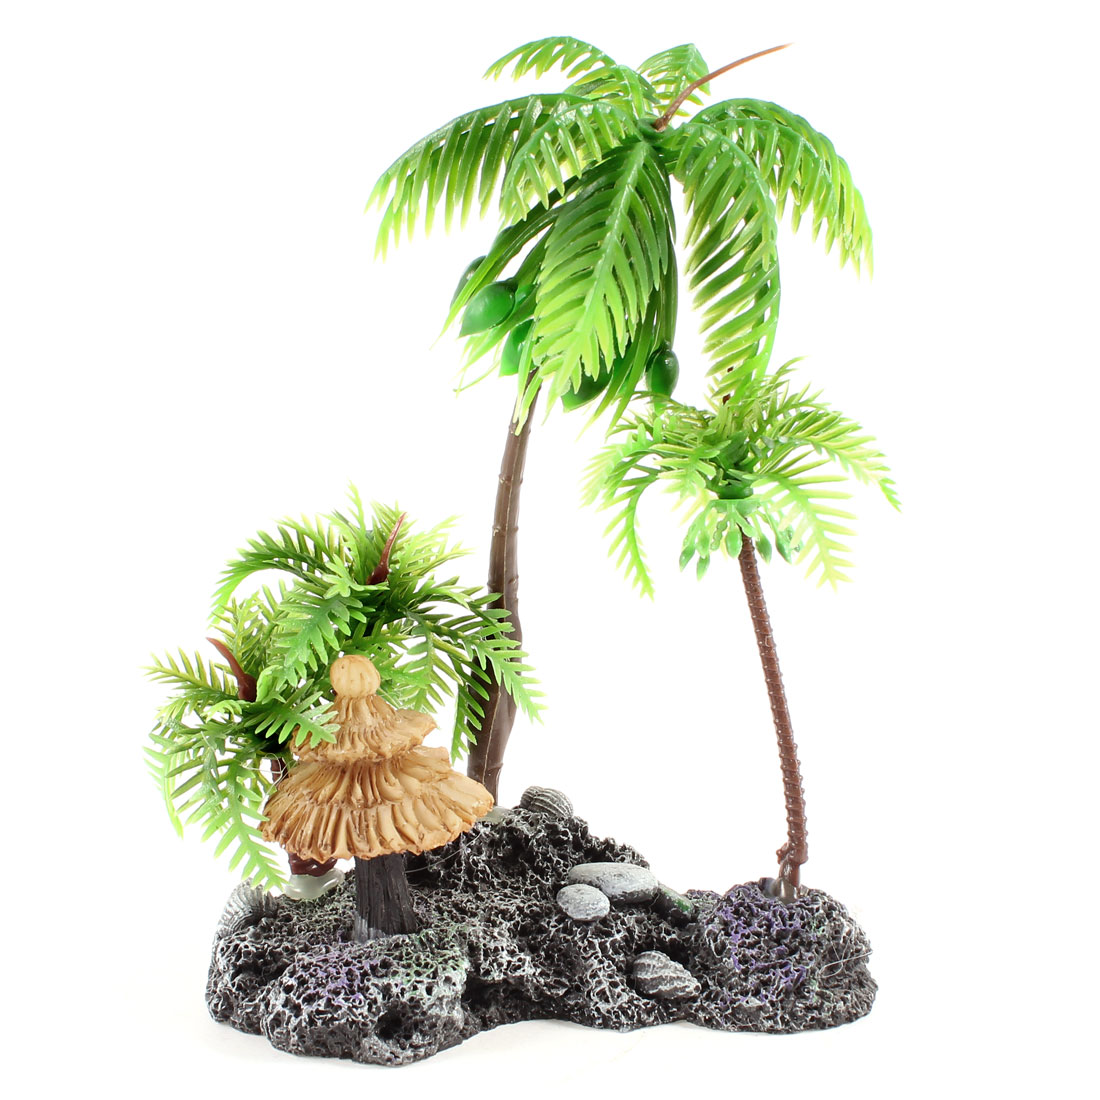 "Aquarium Decor Ceramic Base Green Artificial Coconut Tree Plants 5"" High"